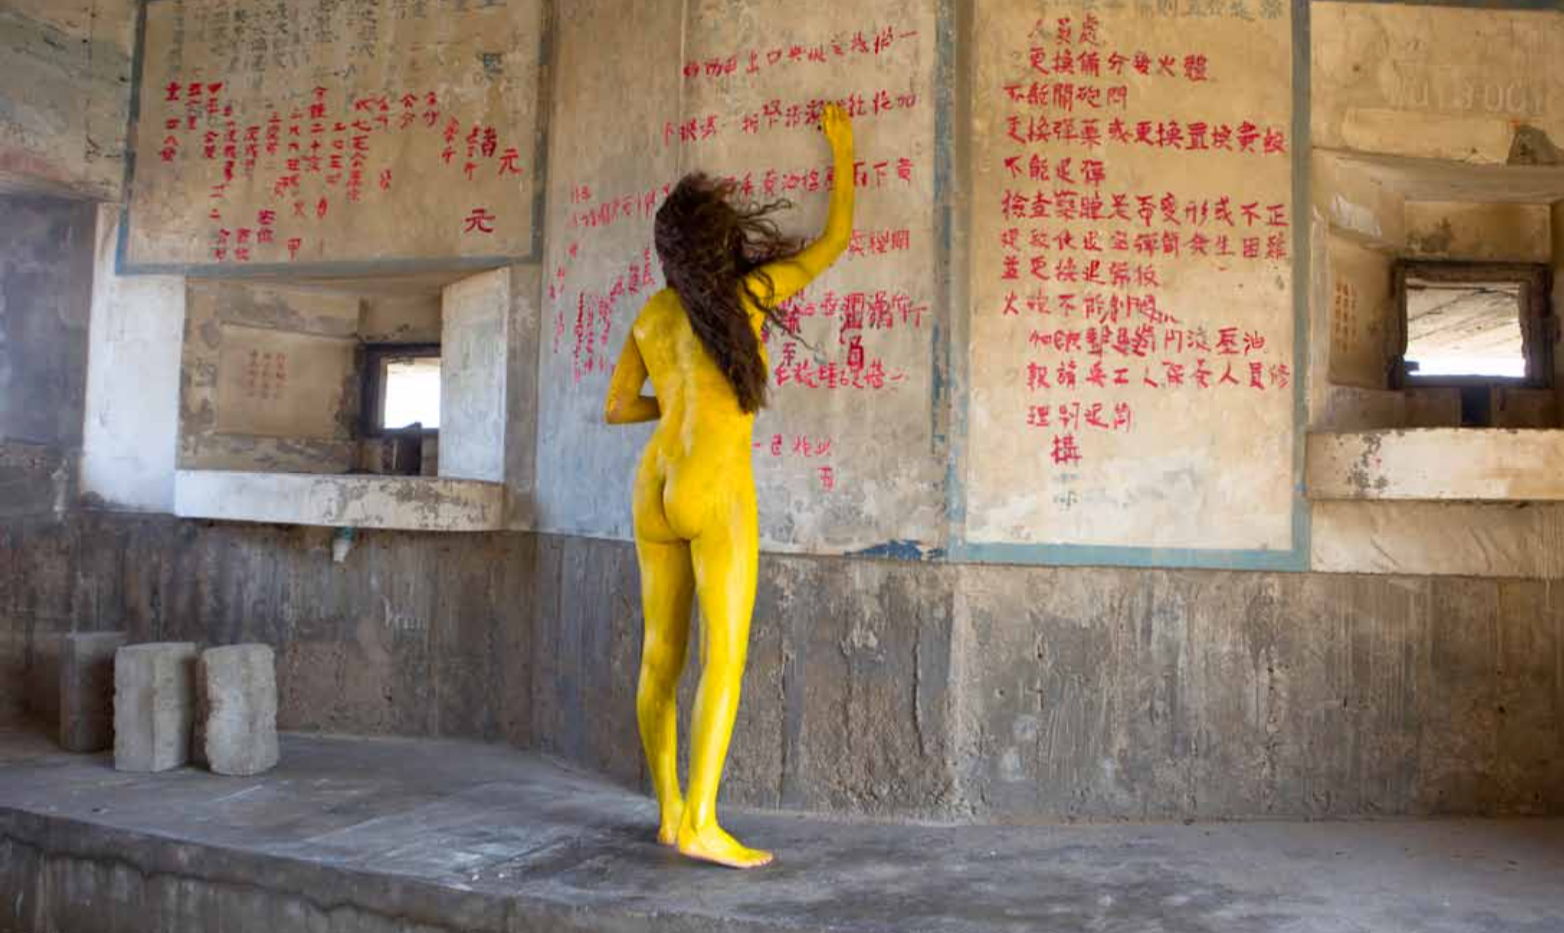 Action for Jinmen Island - Taiwan 2013 - Photography of performance Diptych - C-print - 160cm x 120cm - Edition of 5 + 2E